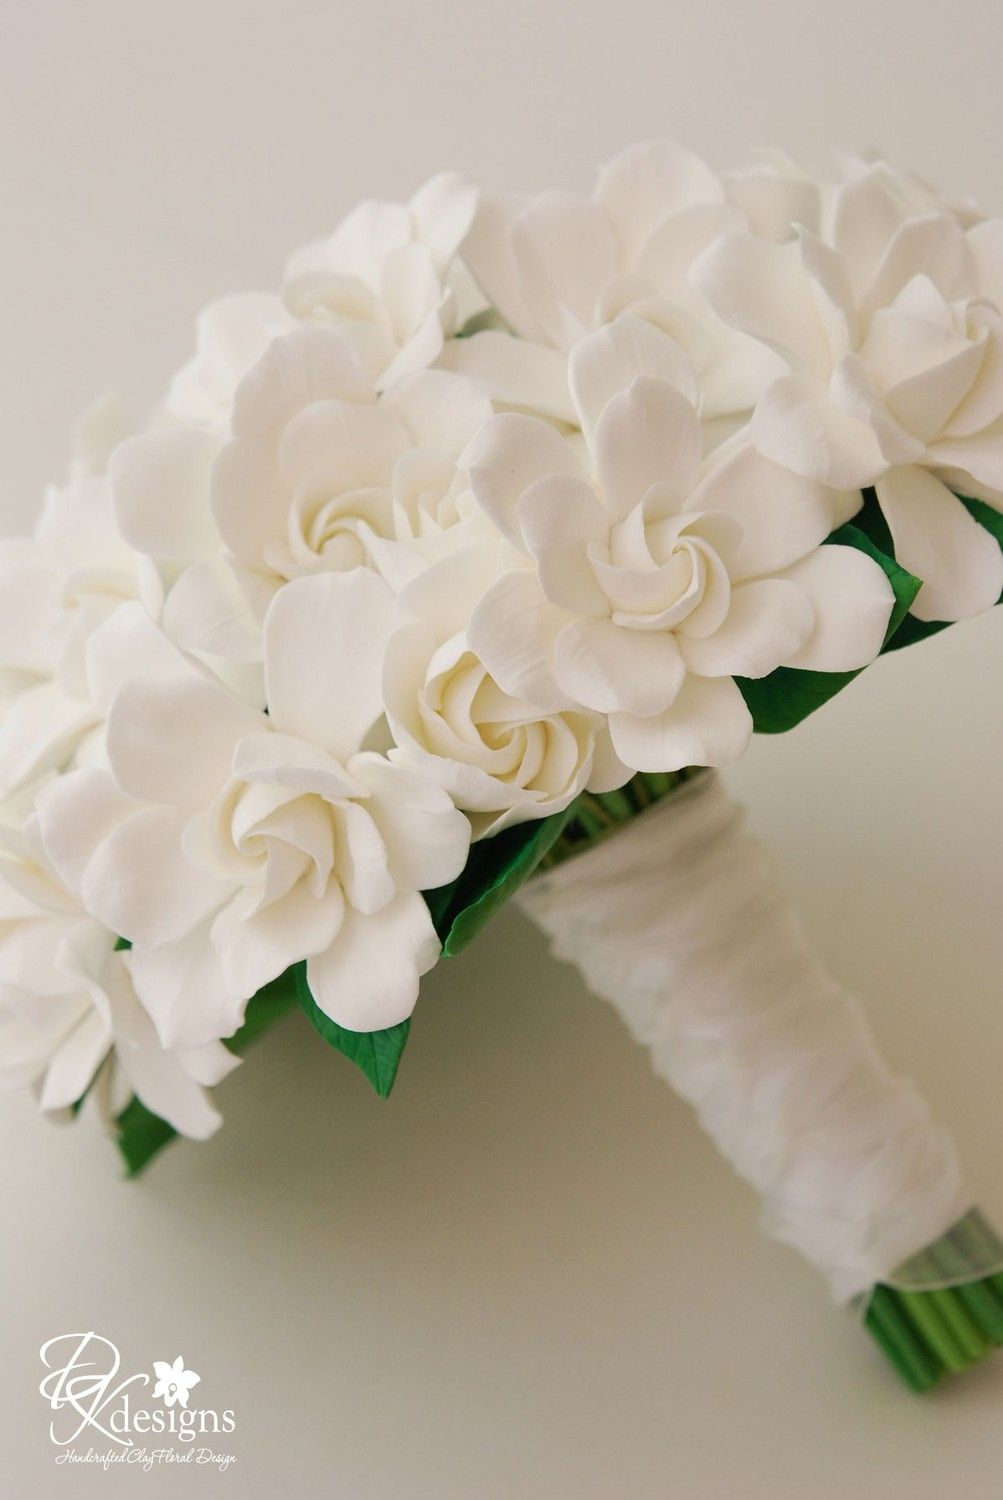 Couture Clay Gardenia Wedding Bouquet Made To Order Gardenia Wedding Bouquets Flower Bouquet Wedding Gardenia Wedding